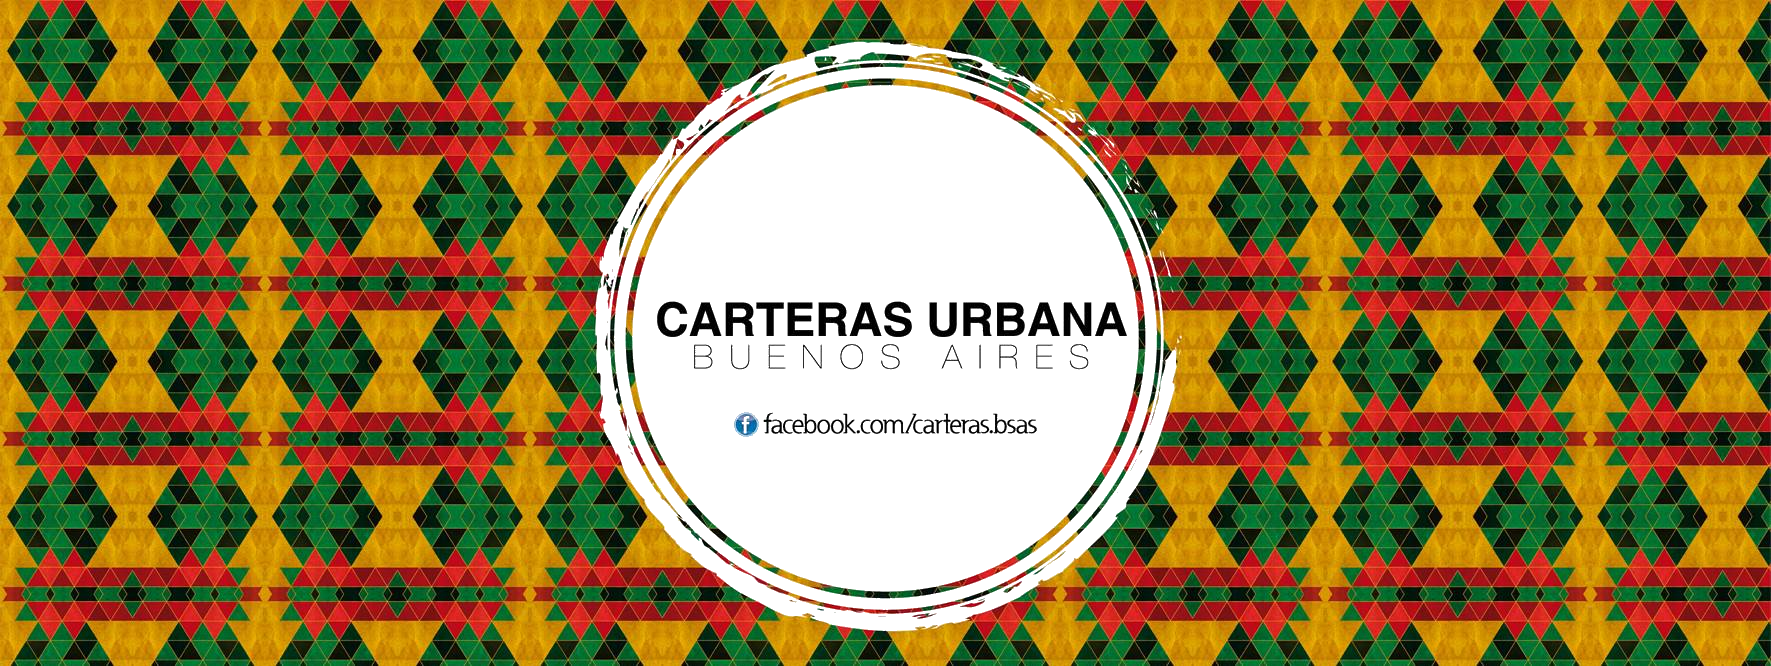 Carteras Urbana Bs. As.